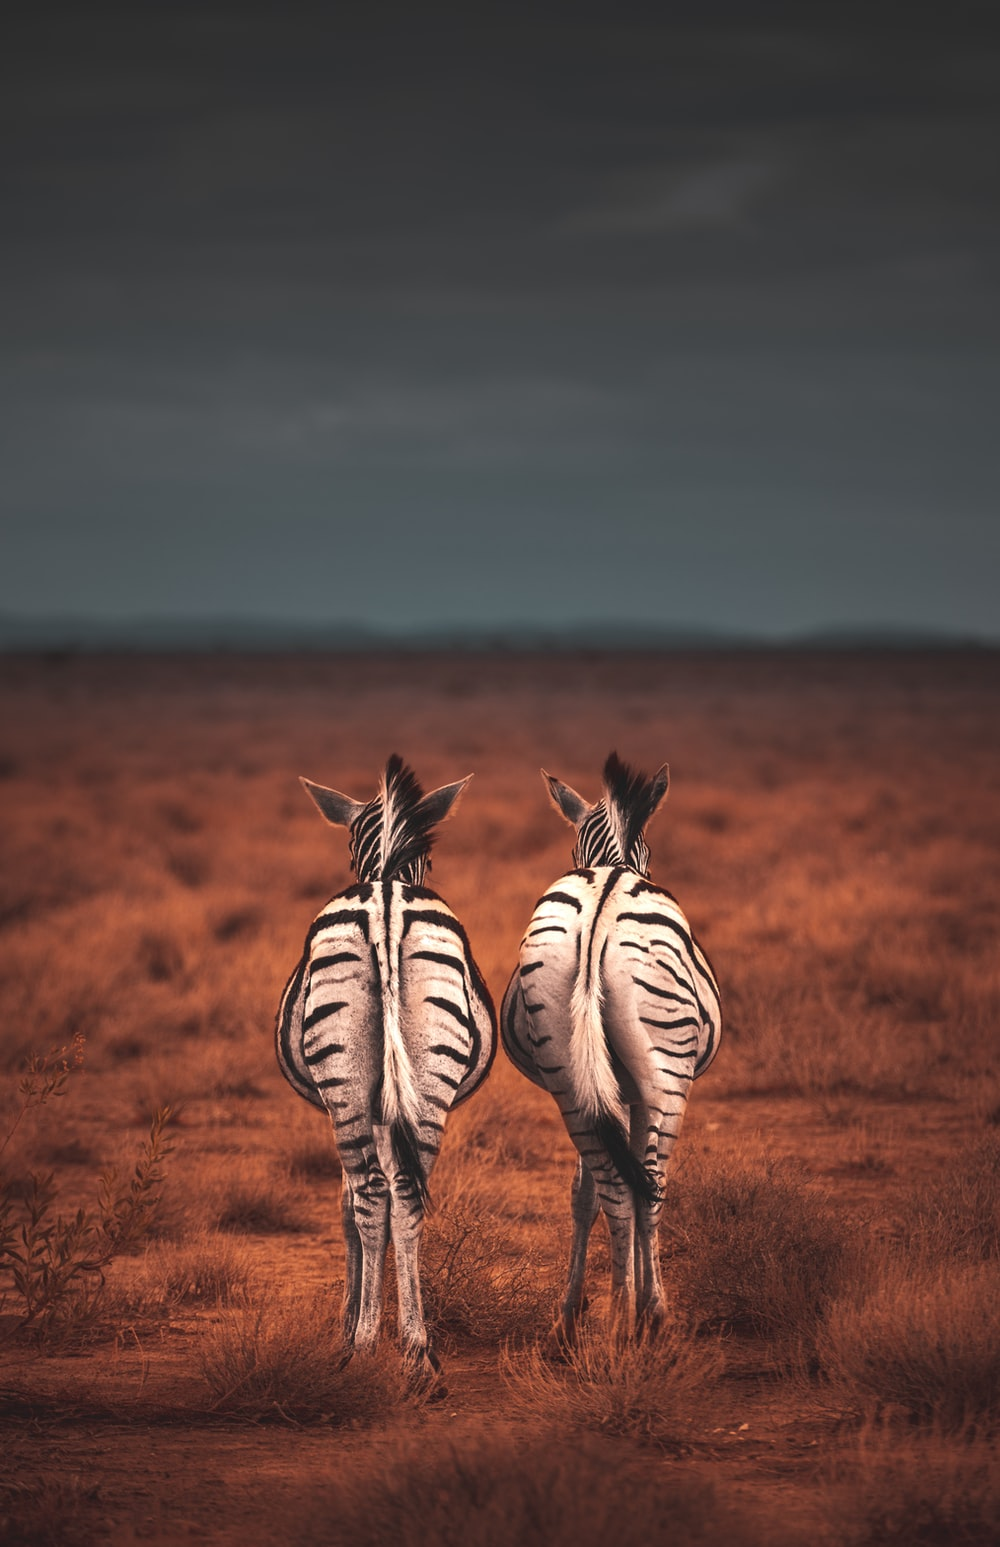 two standing white-and-black zebras